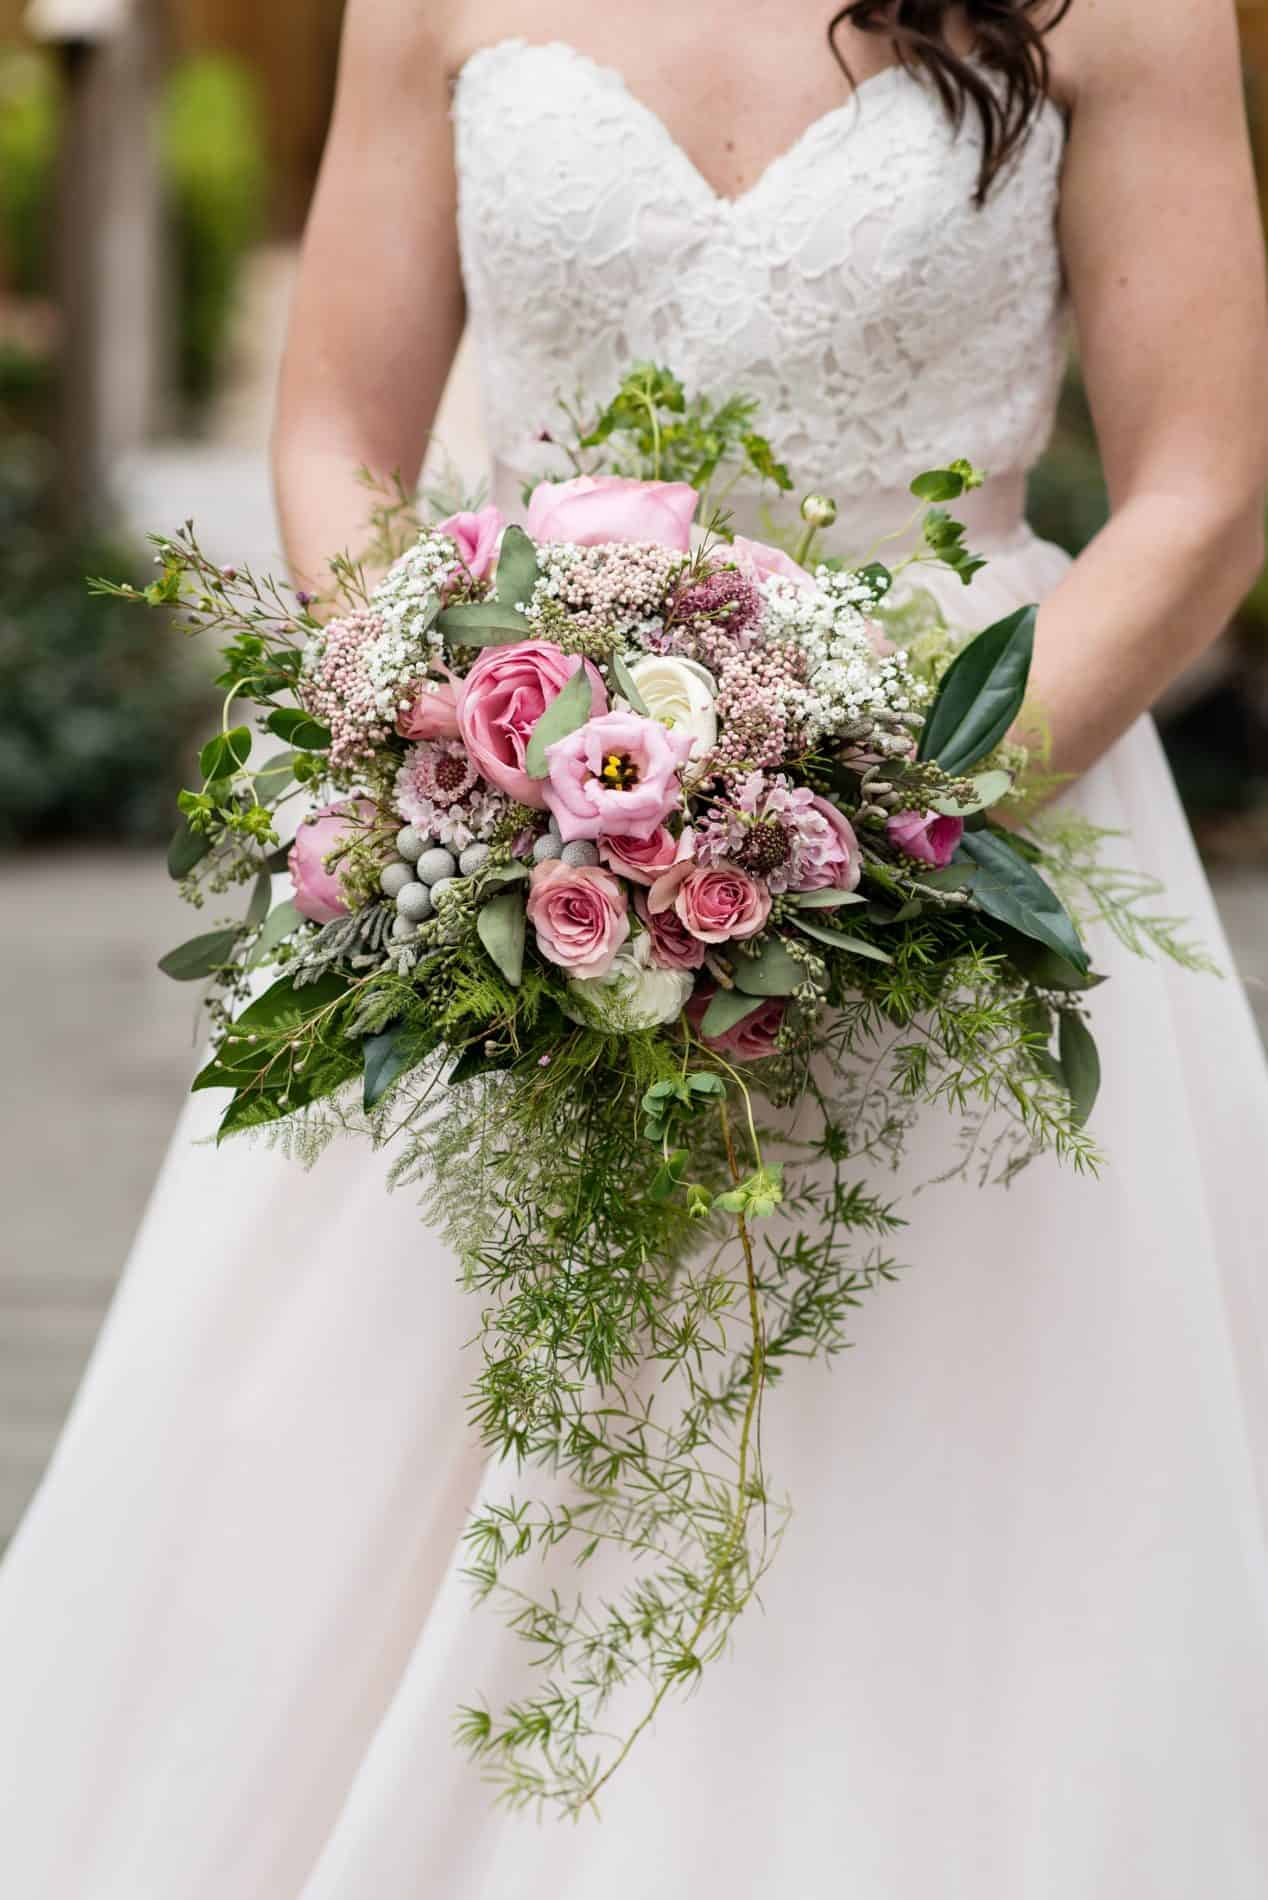 The Flower Studio Provided this Gorgeous Rustic Arrangement